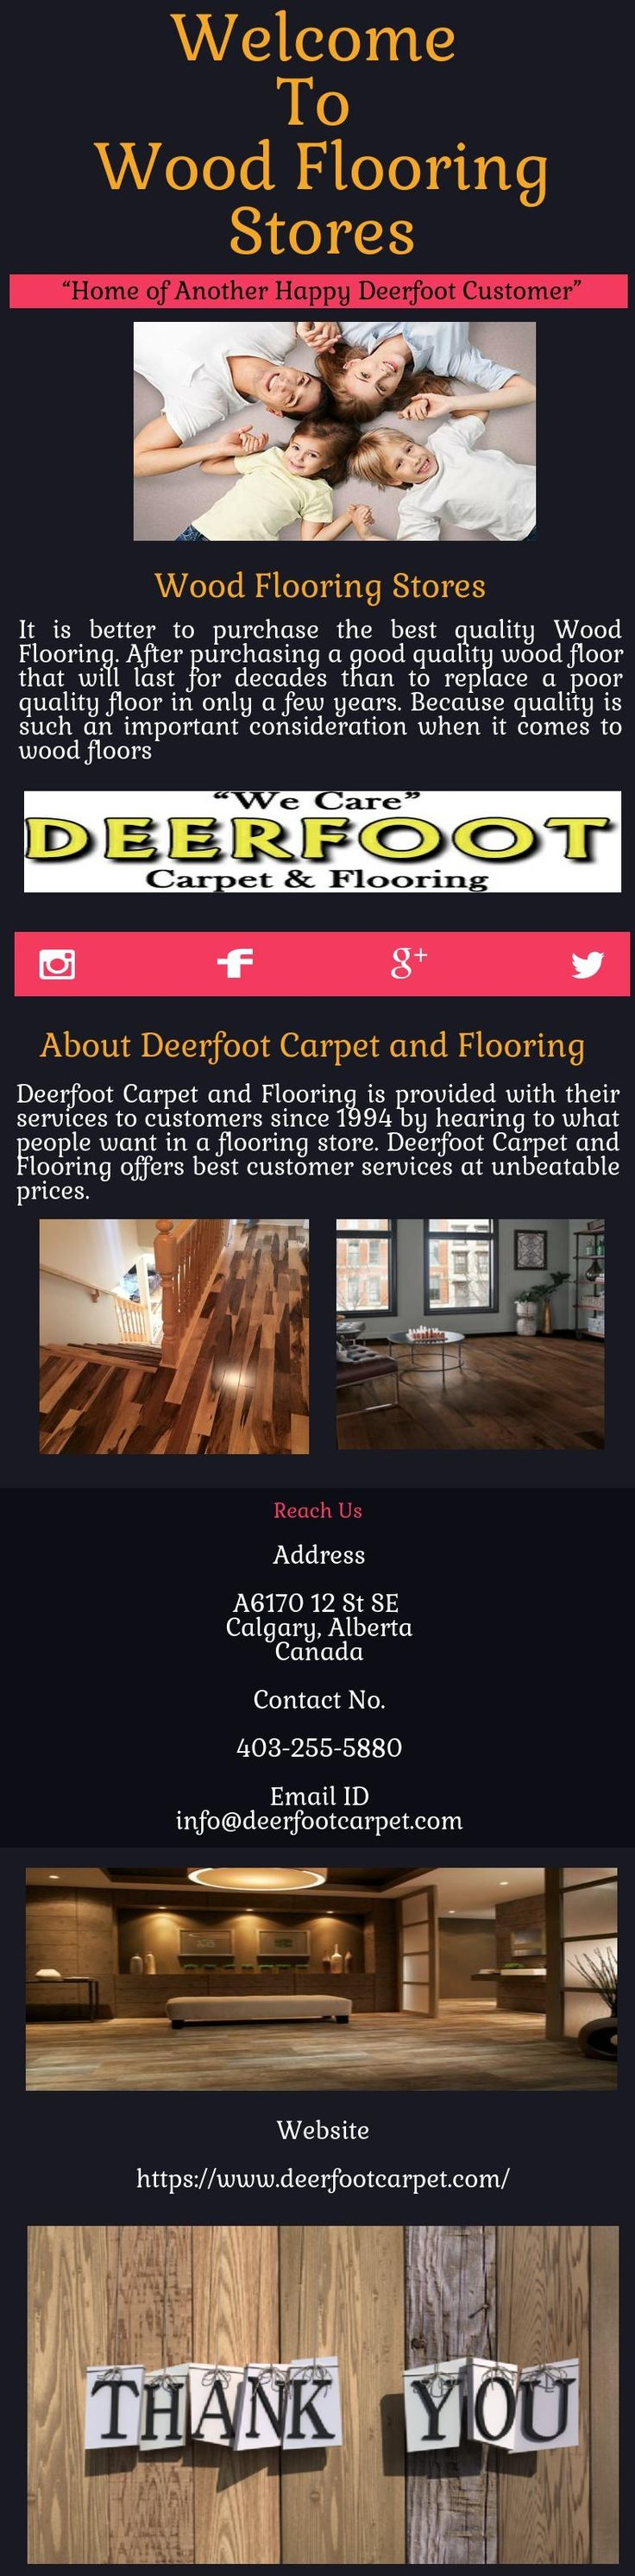 We offer our engineered Wood Flooring products at competitively affordable prices because we conduct our business with a healthy measure of independence.